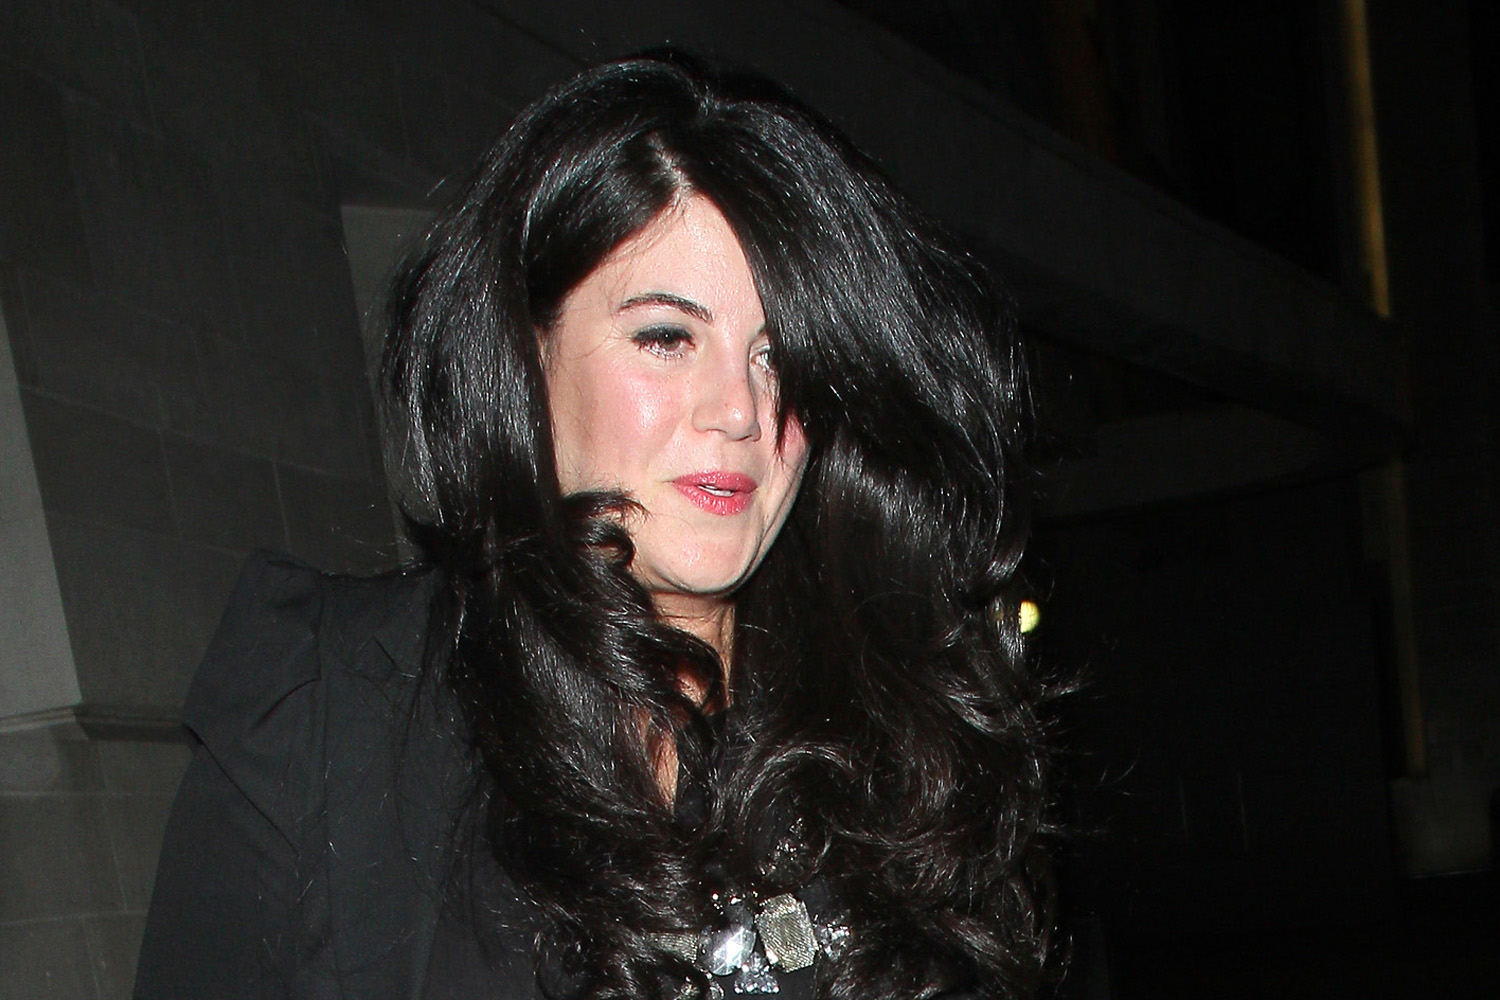 Monica Lewinsky at the Downtown Mayfair restaurant for Heather Kerzner's birthday celebration on March 19, 2013 in London.